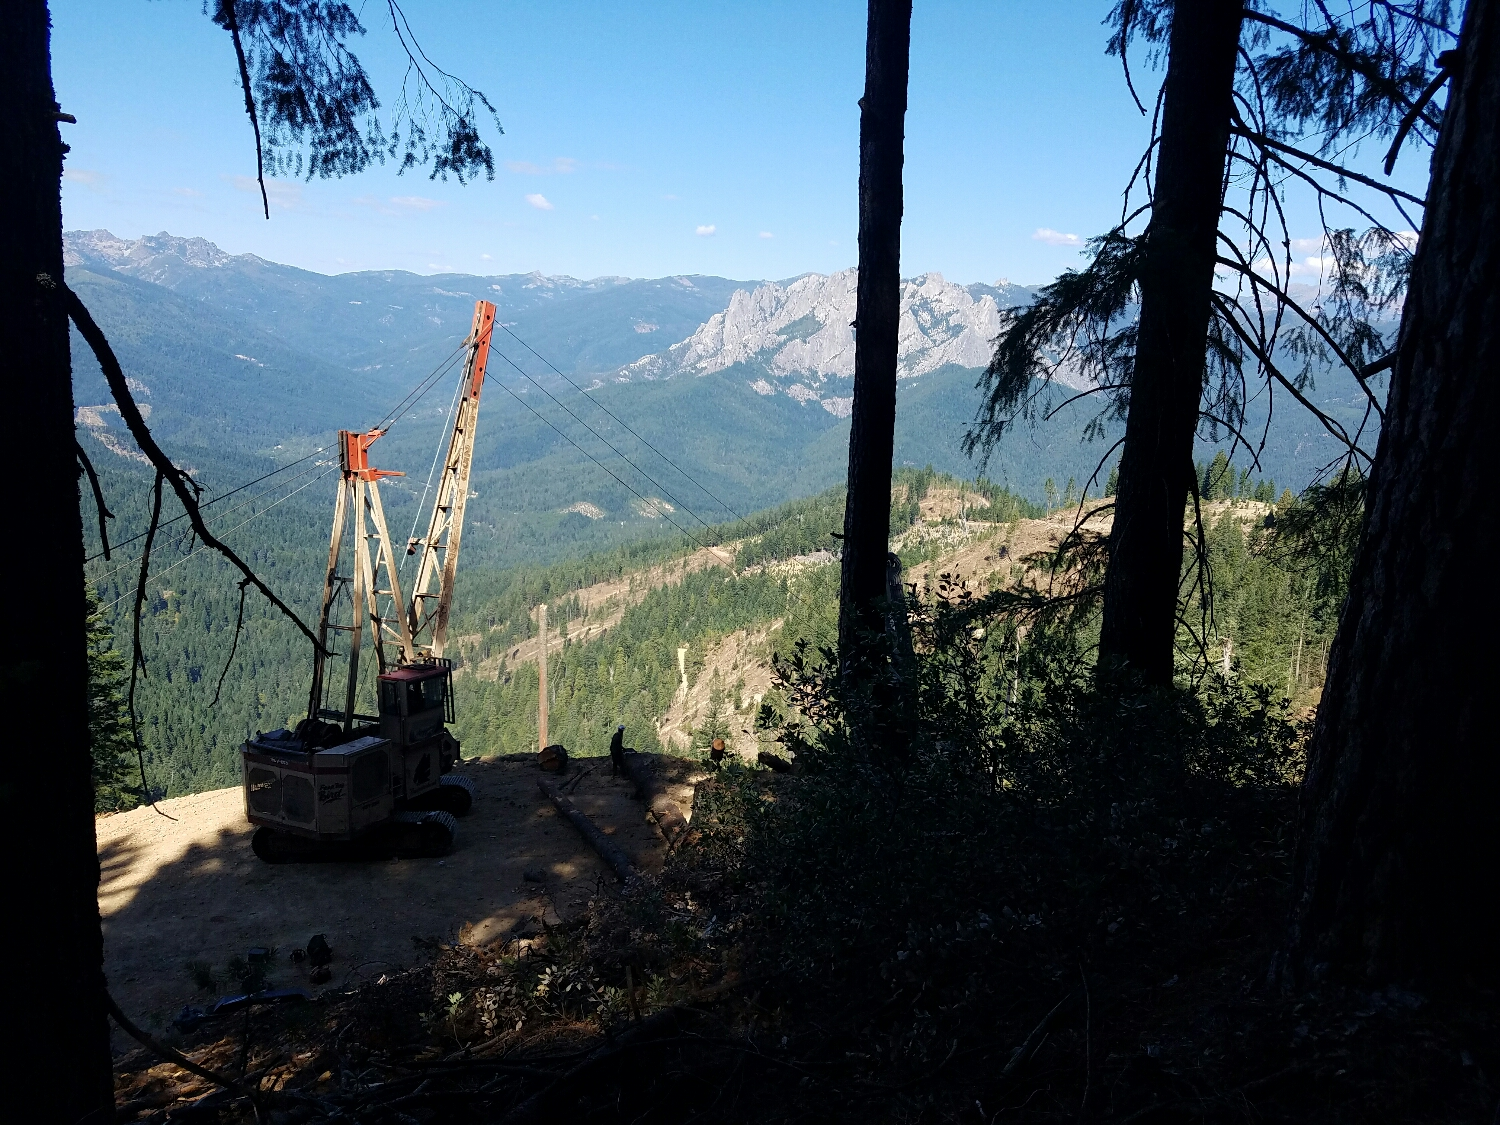 a logging operation right next to the trail.